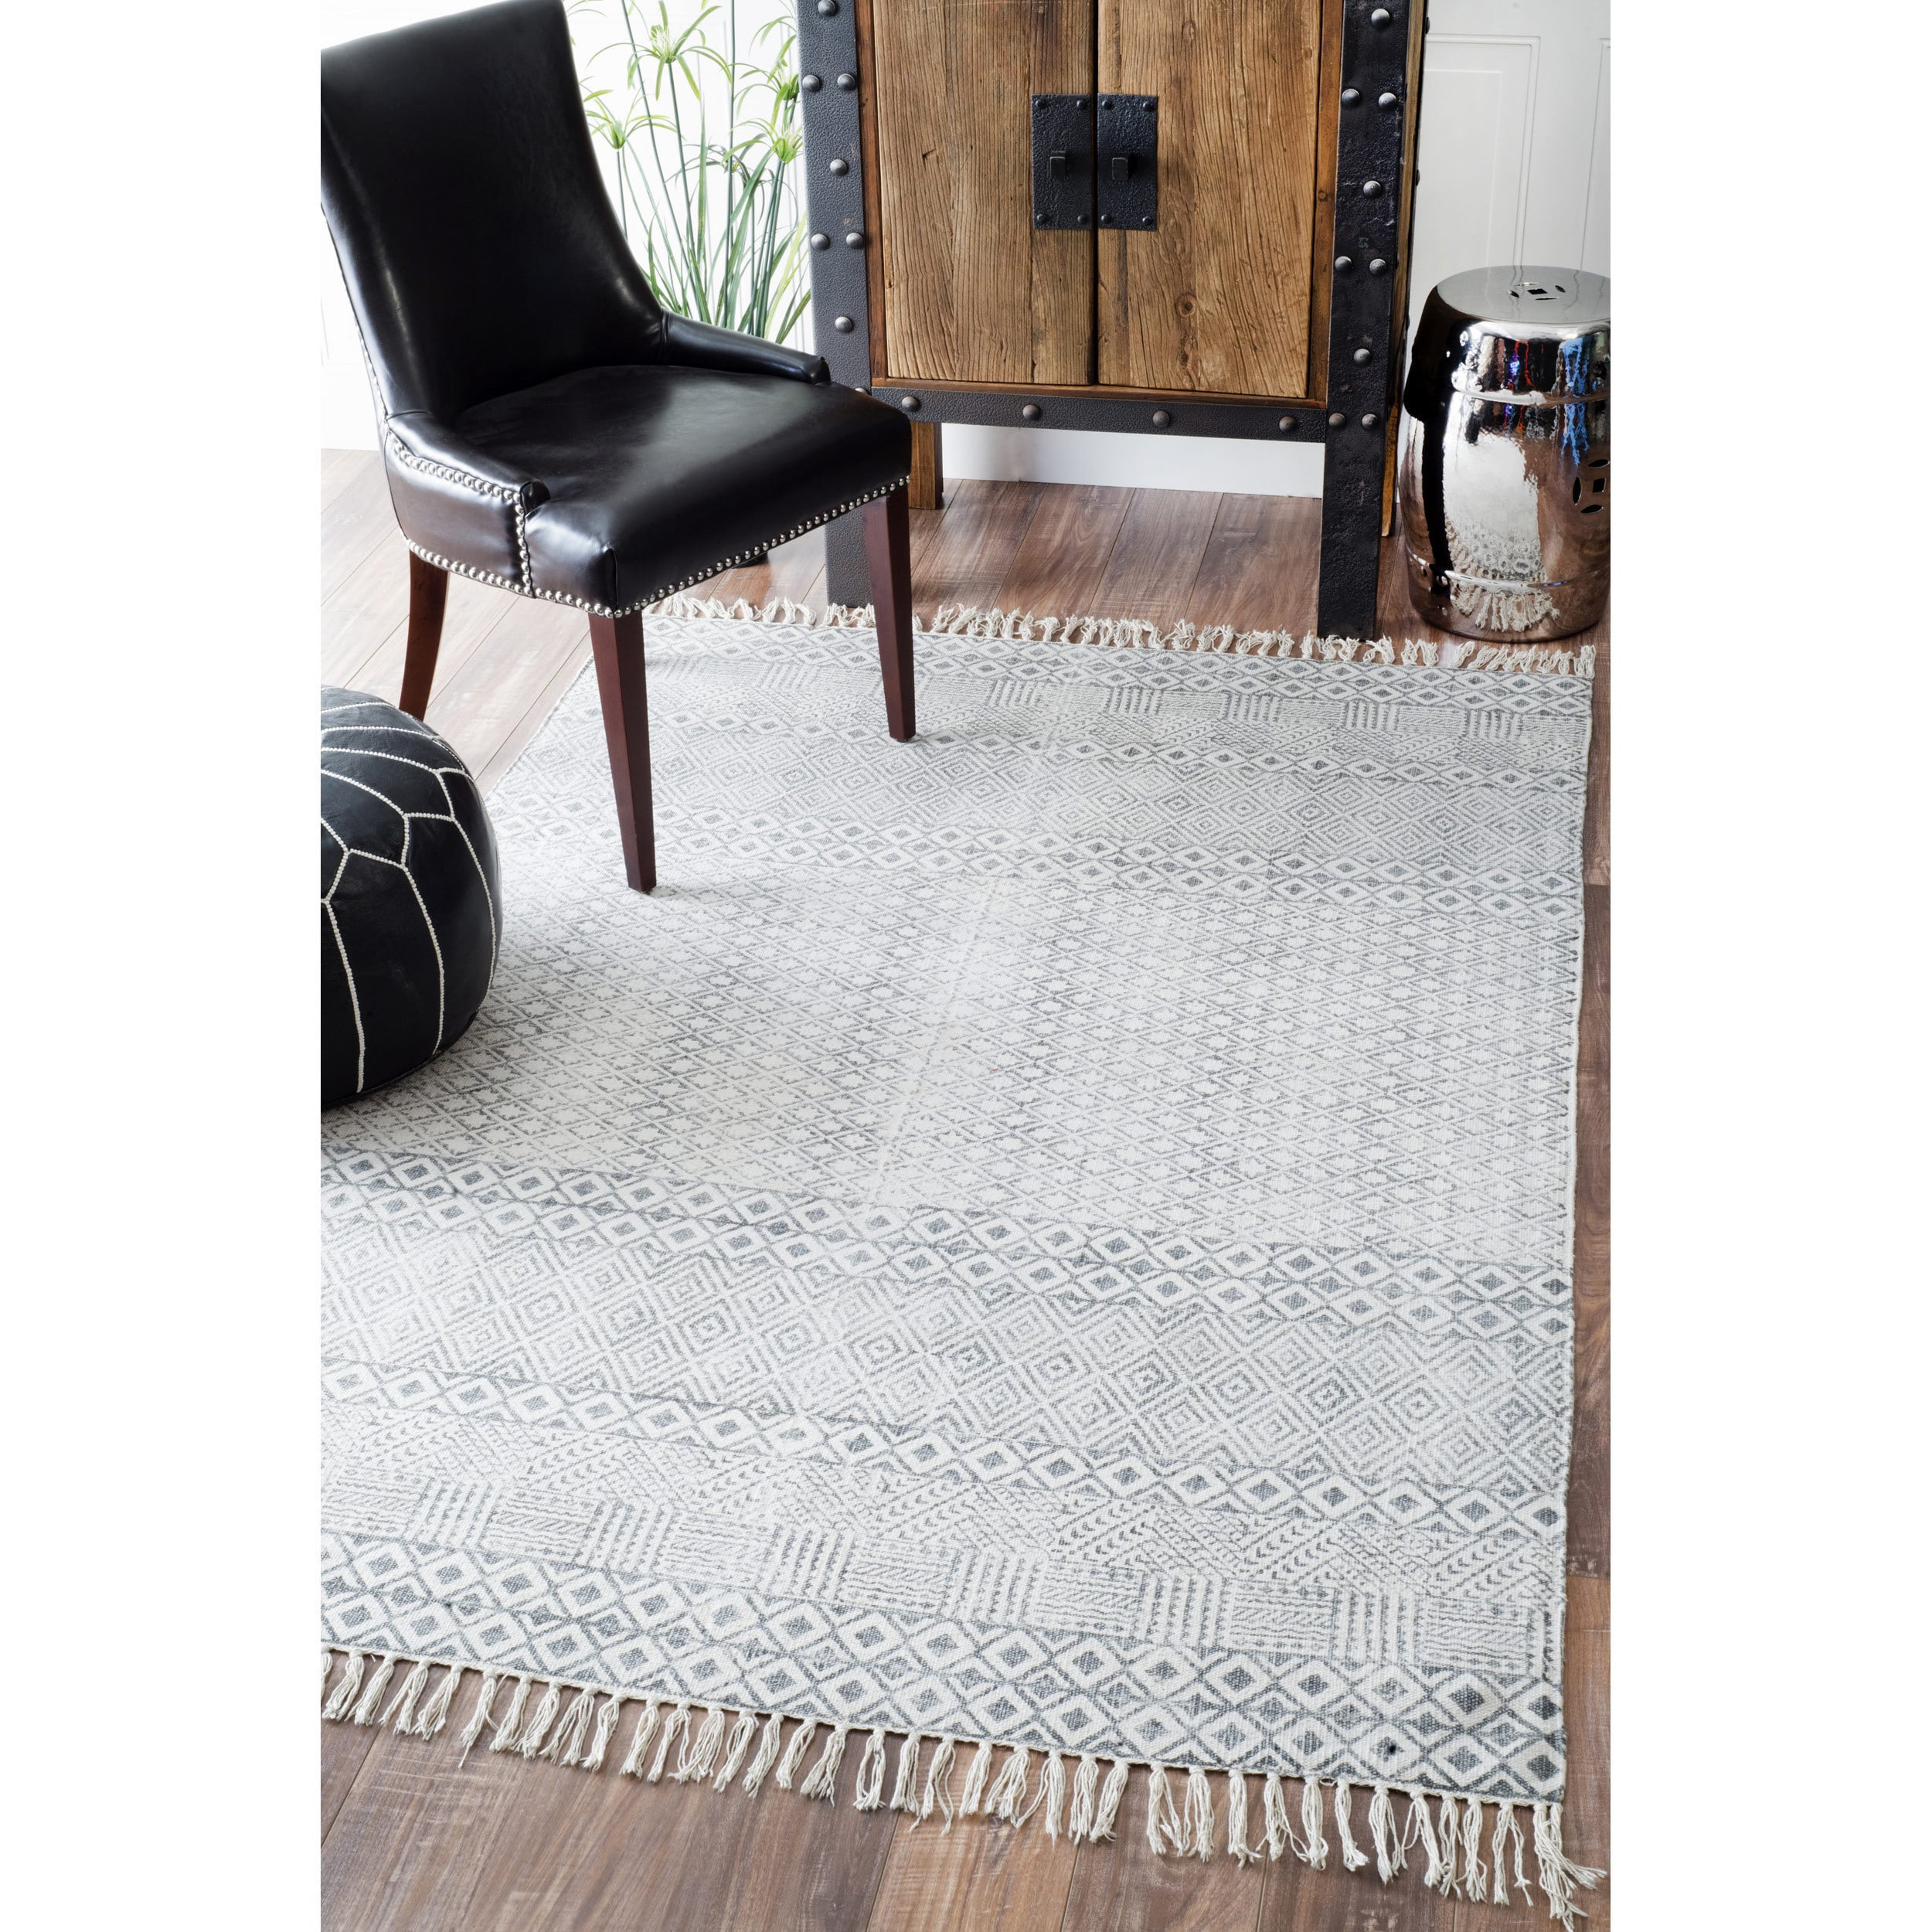 rug rust harlow images lovely ivory microfiber inspirational furniture shipping x woven living of area free room